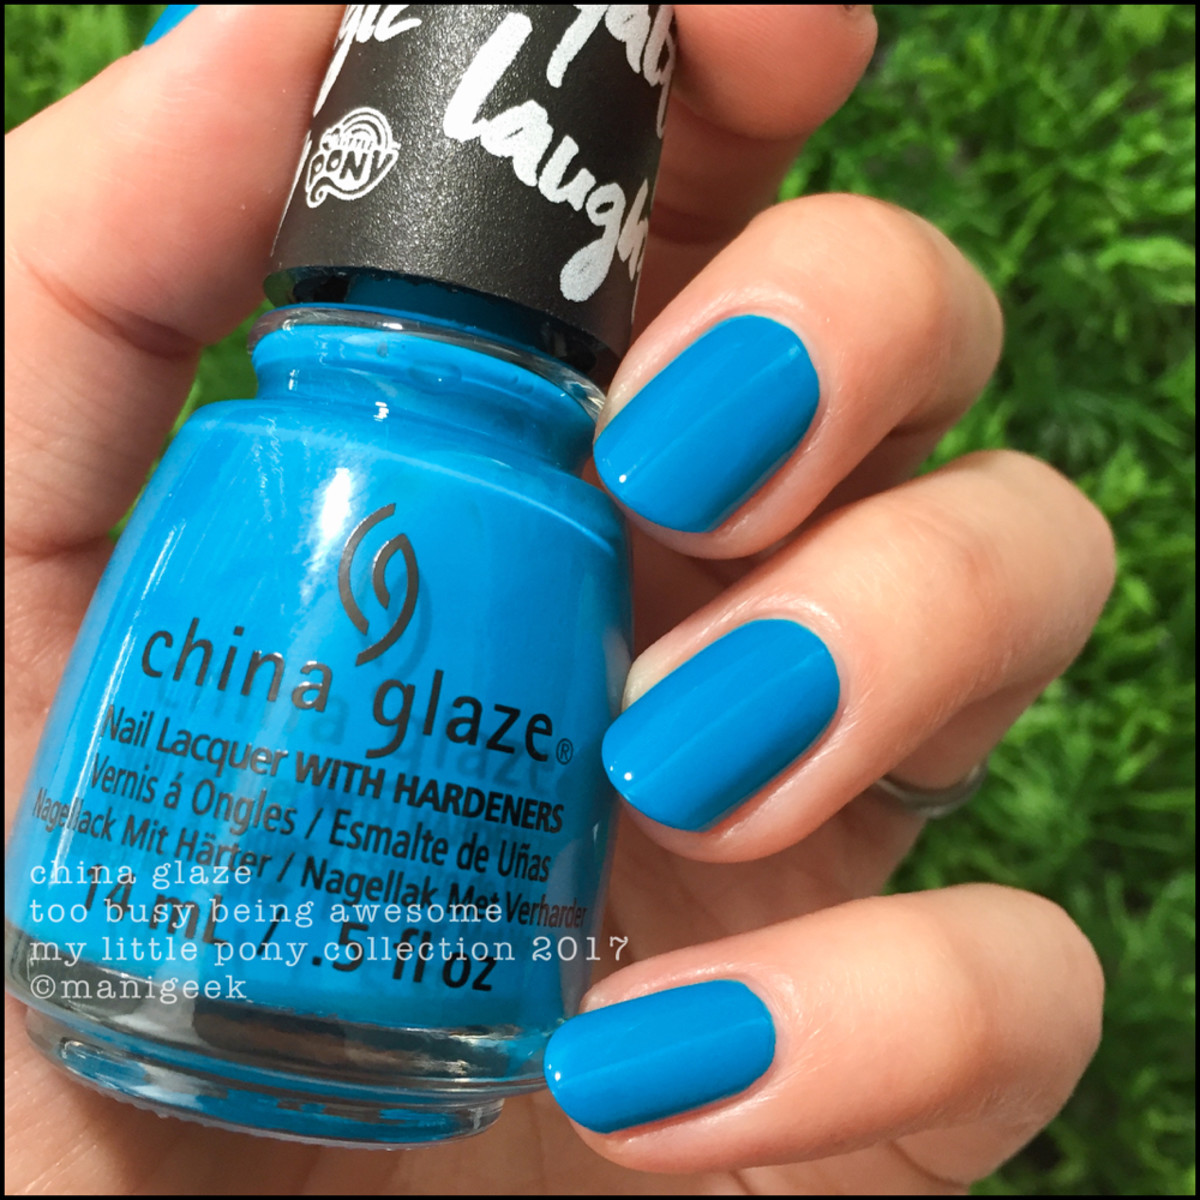 China Glaze Too Busy Being Awesome - My Little Pony Collection 2017